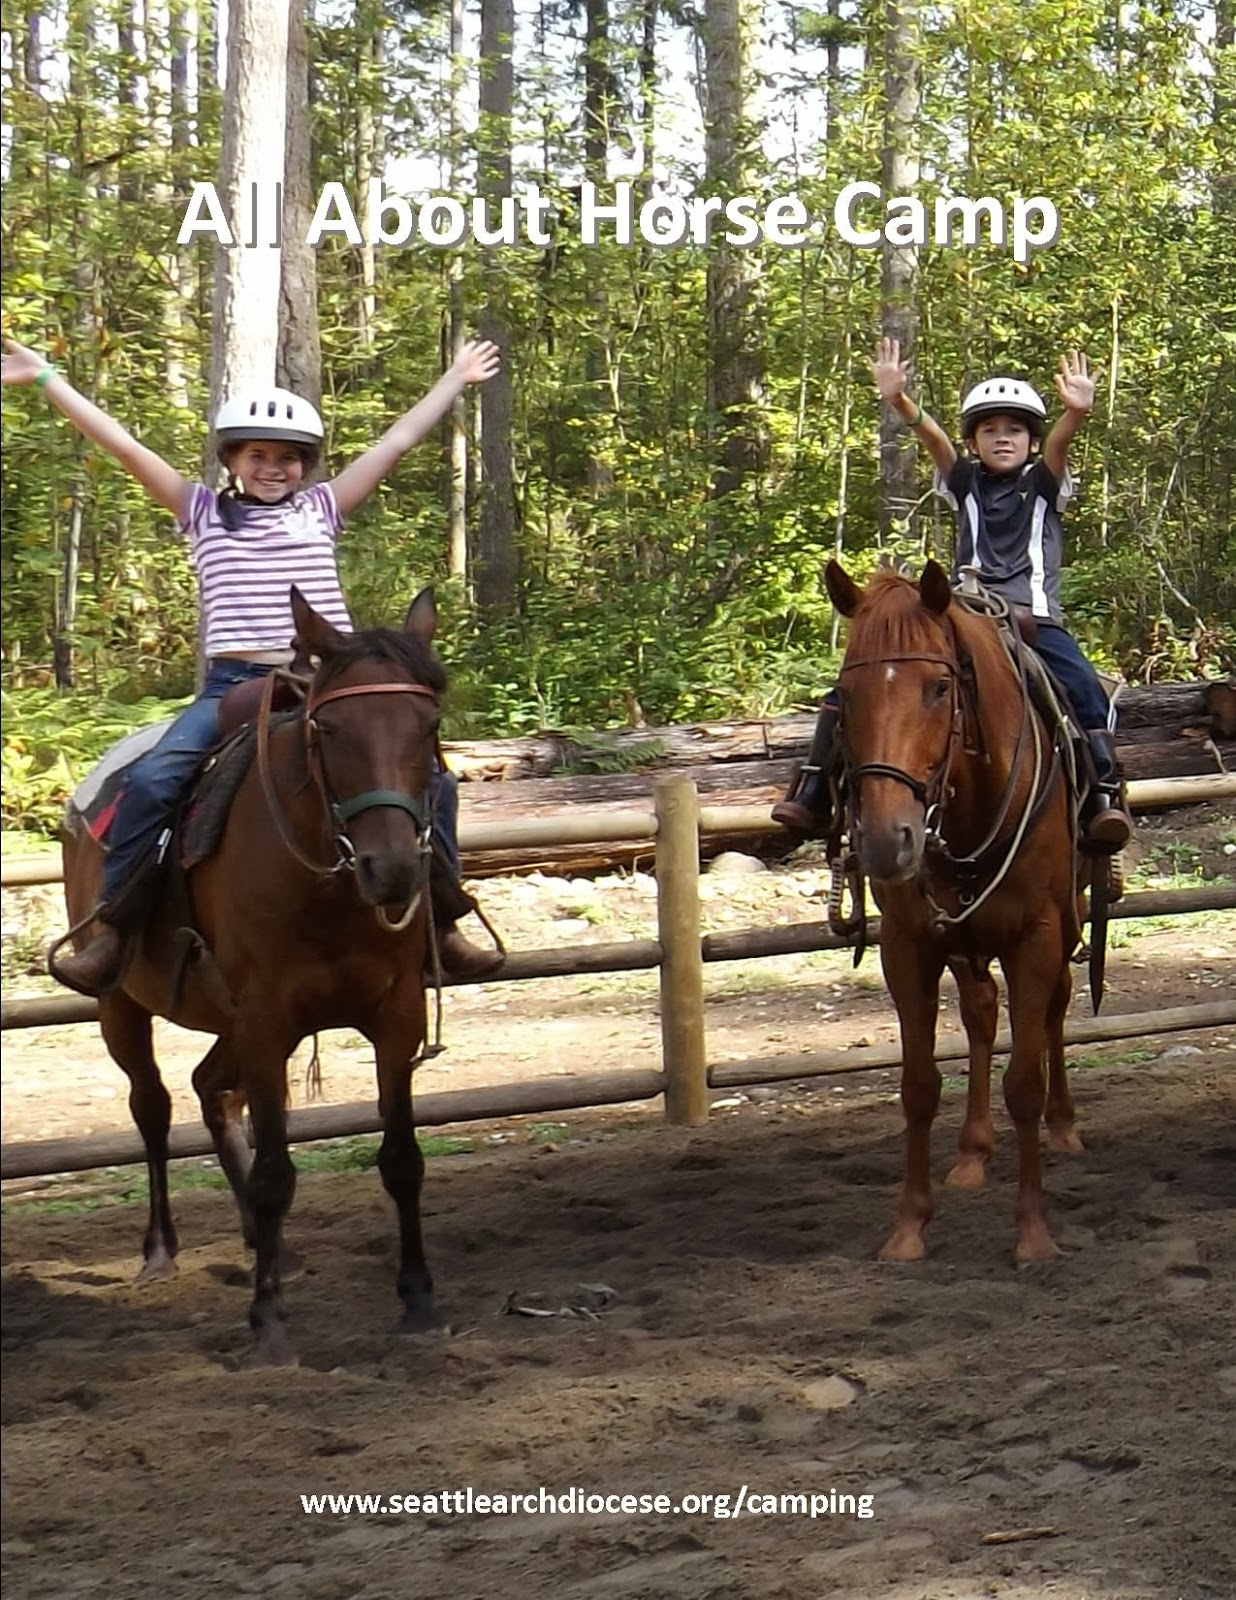 All About Horse Camp